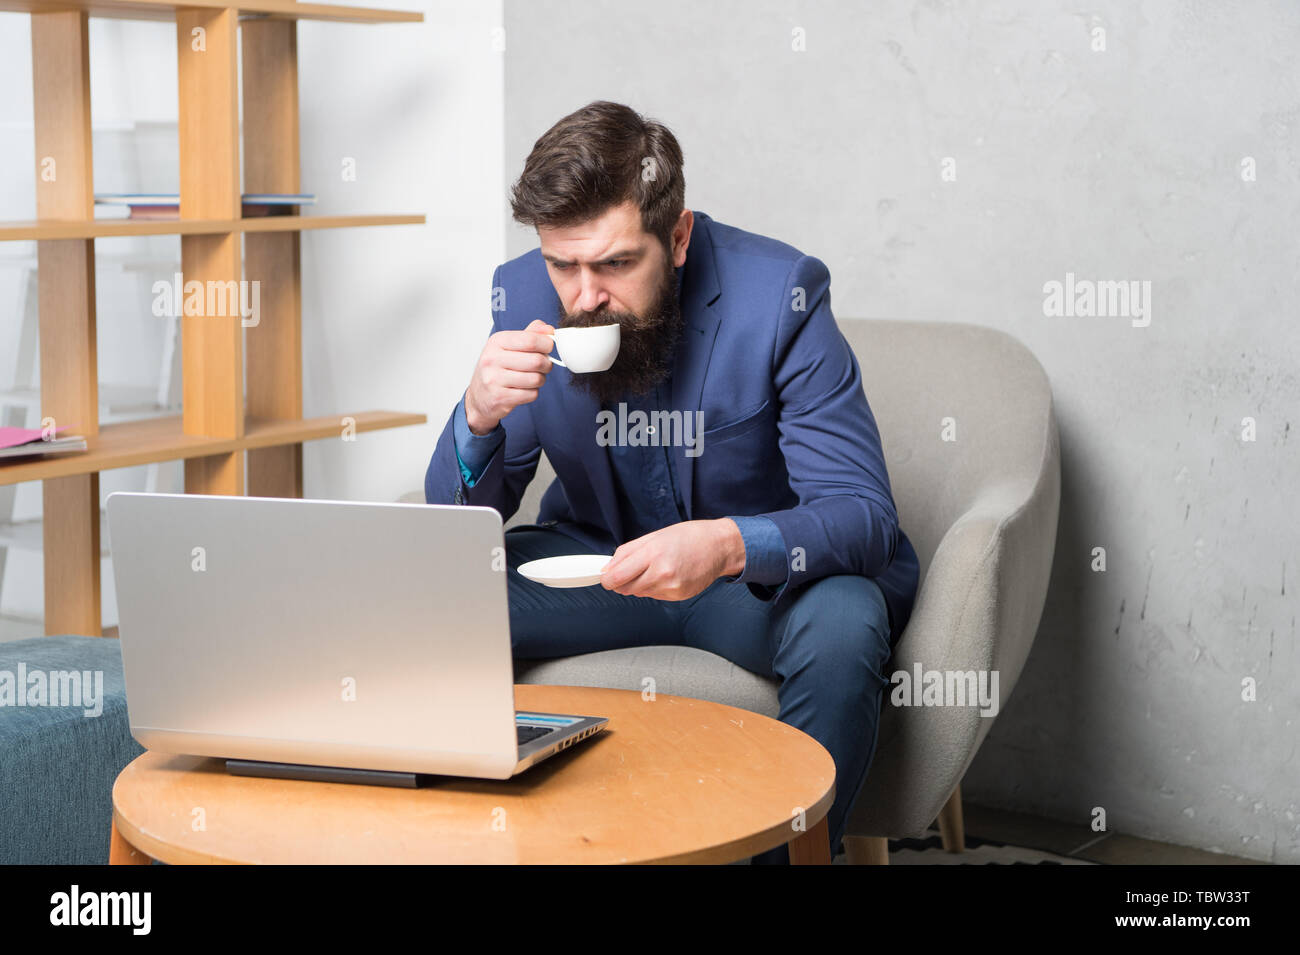 Business correspondence. Modern businessman. Businessman work laptop. Responding business email. Surfing internet. Project manager. Digital business. Financial consultation. Banker or accountant. - Stock Image